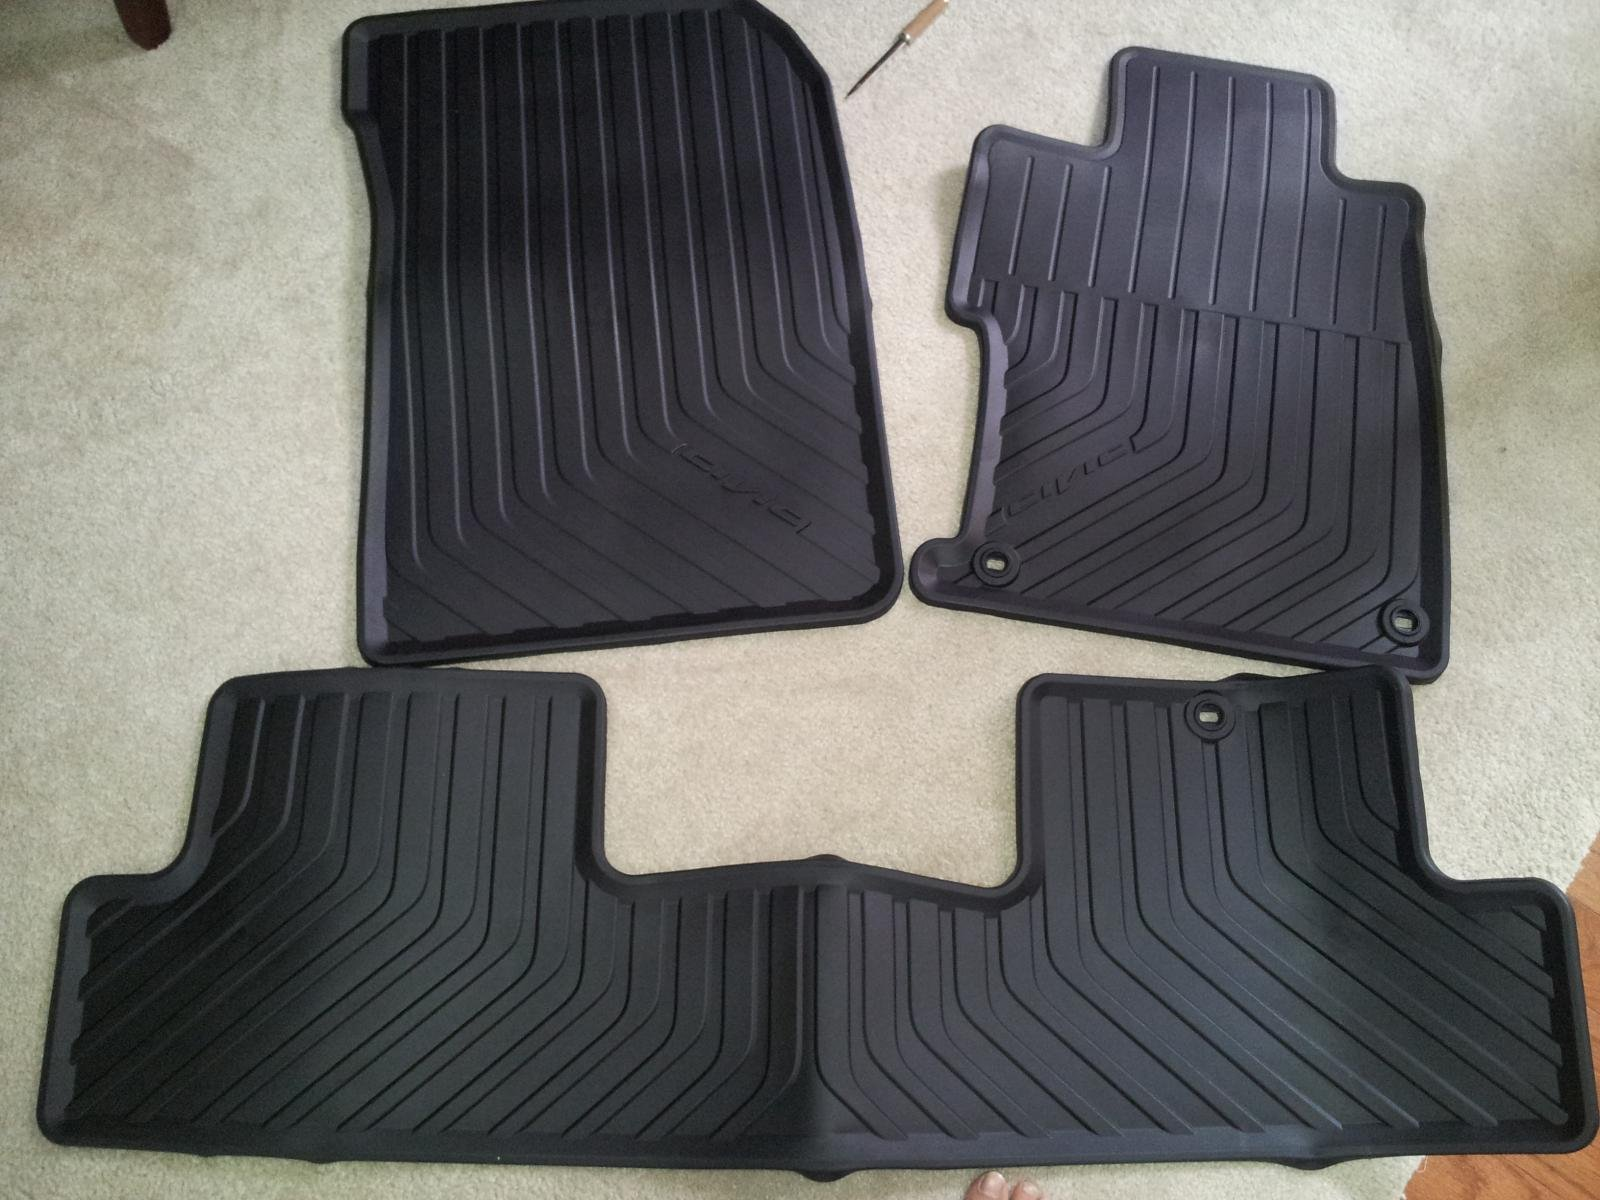 Weathertech mats vancouver - Weathertech Or Oem All Weather Floor Mats